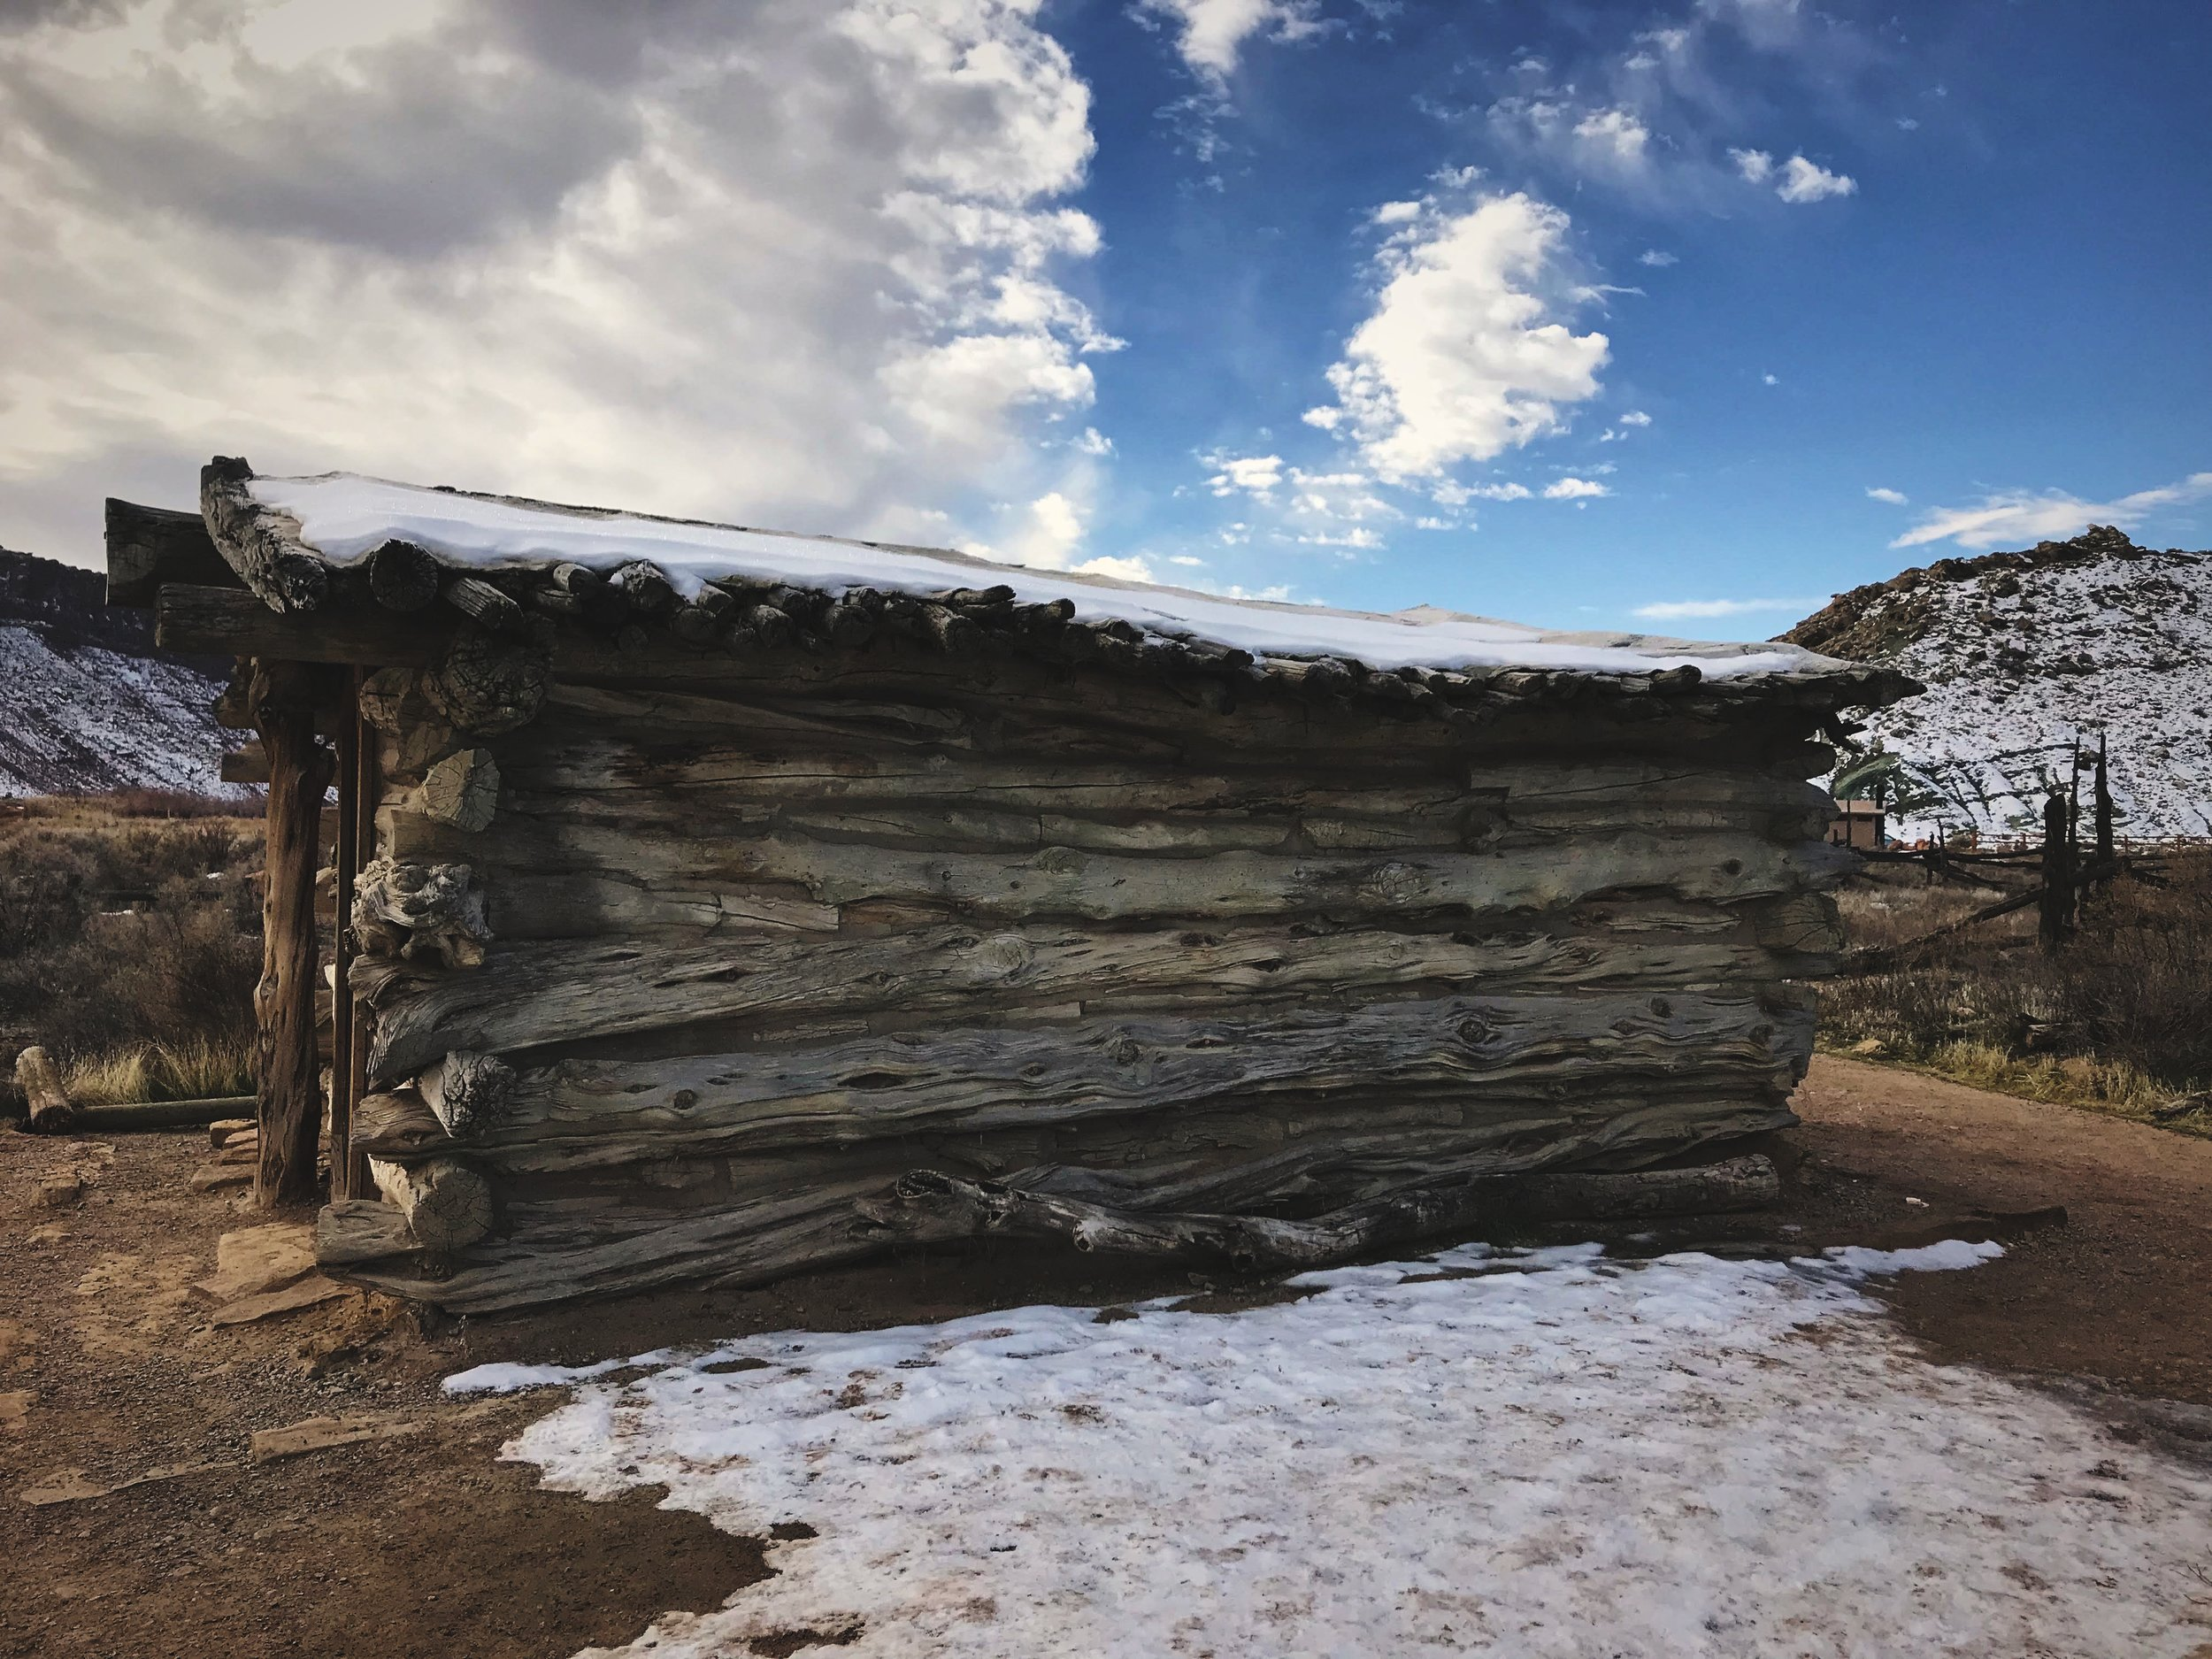 The one-room cabin at Wolfe Ranch on the way to Delicate Arch.